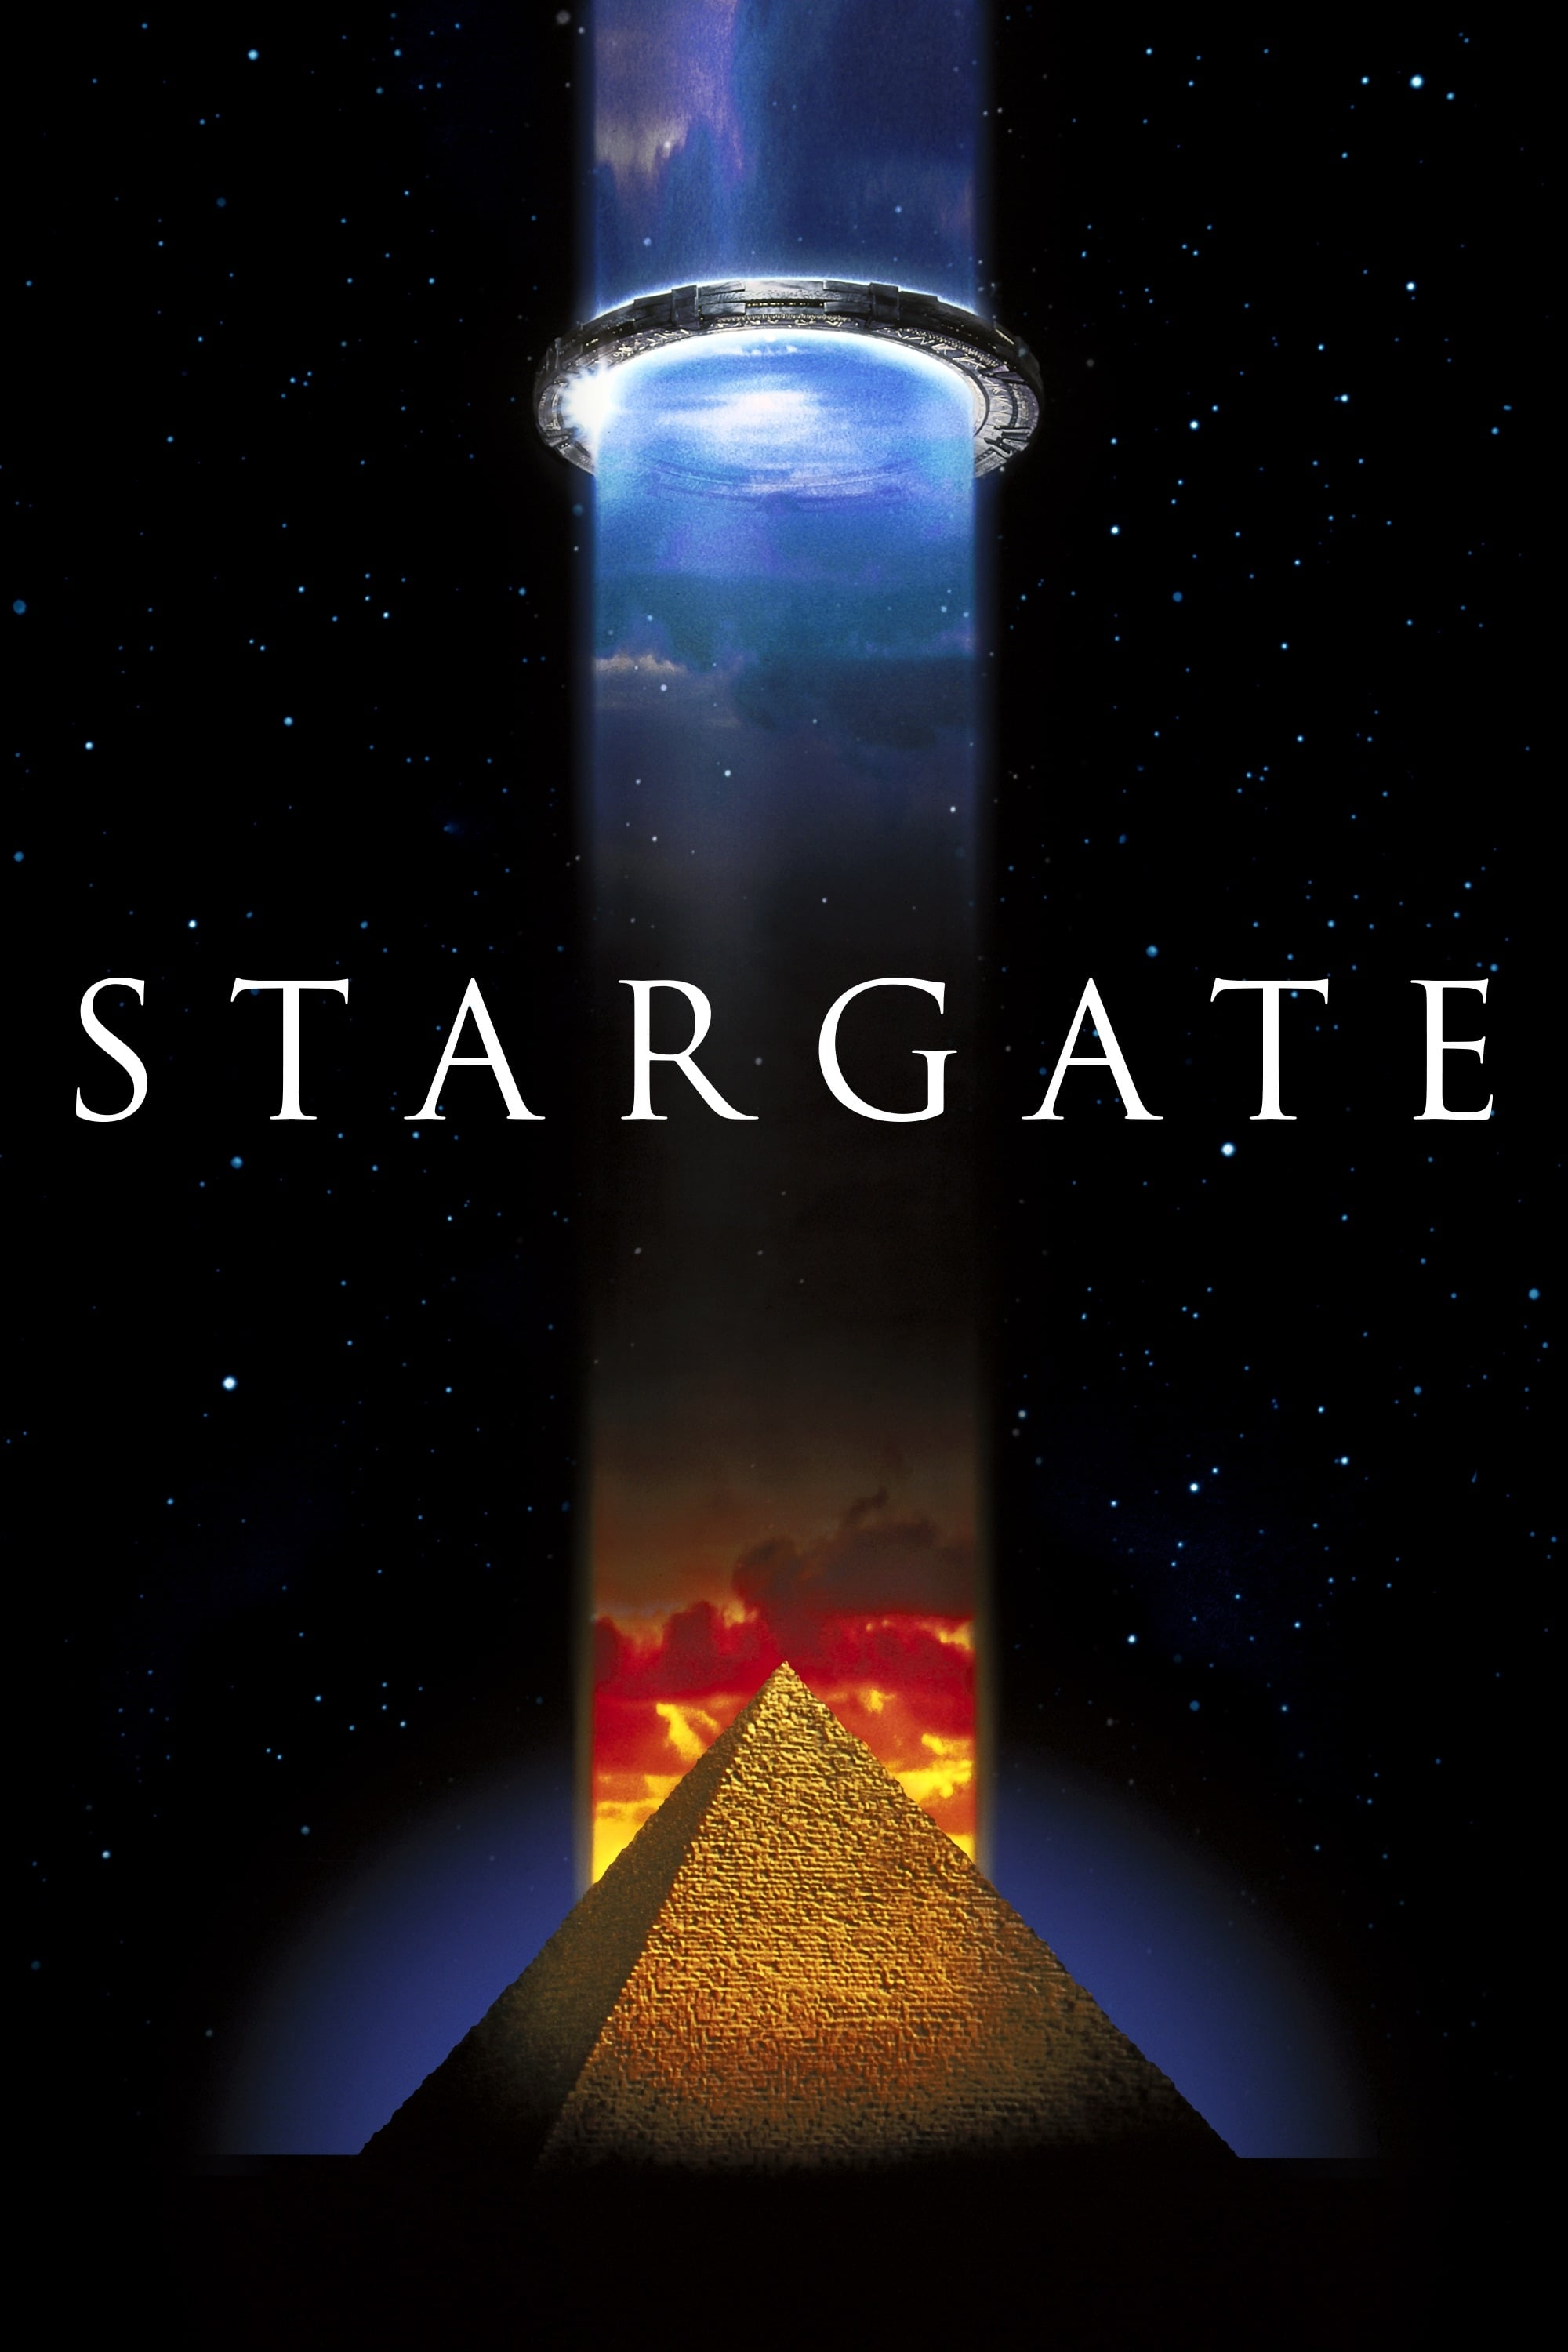 Stargate 1994 Deutsch Ganzer Film